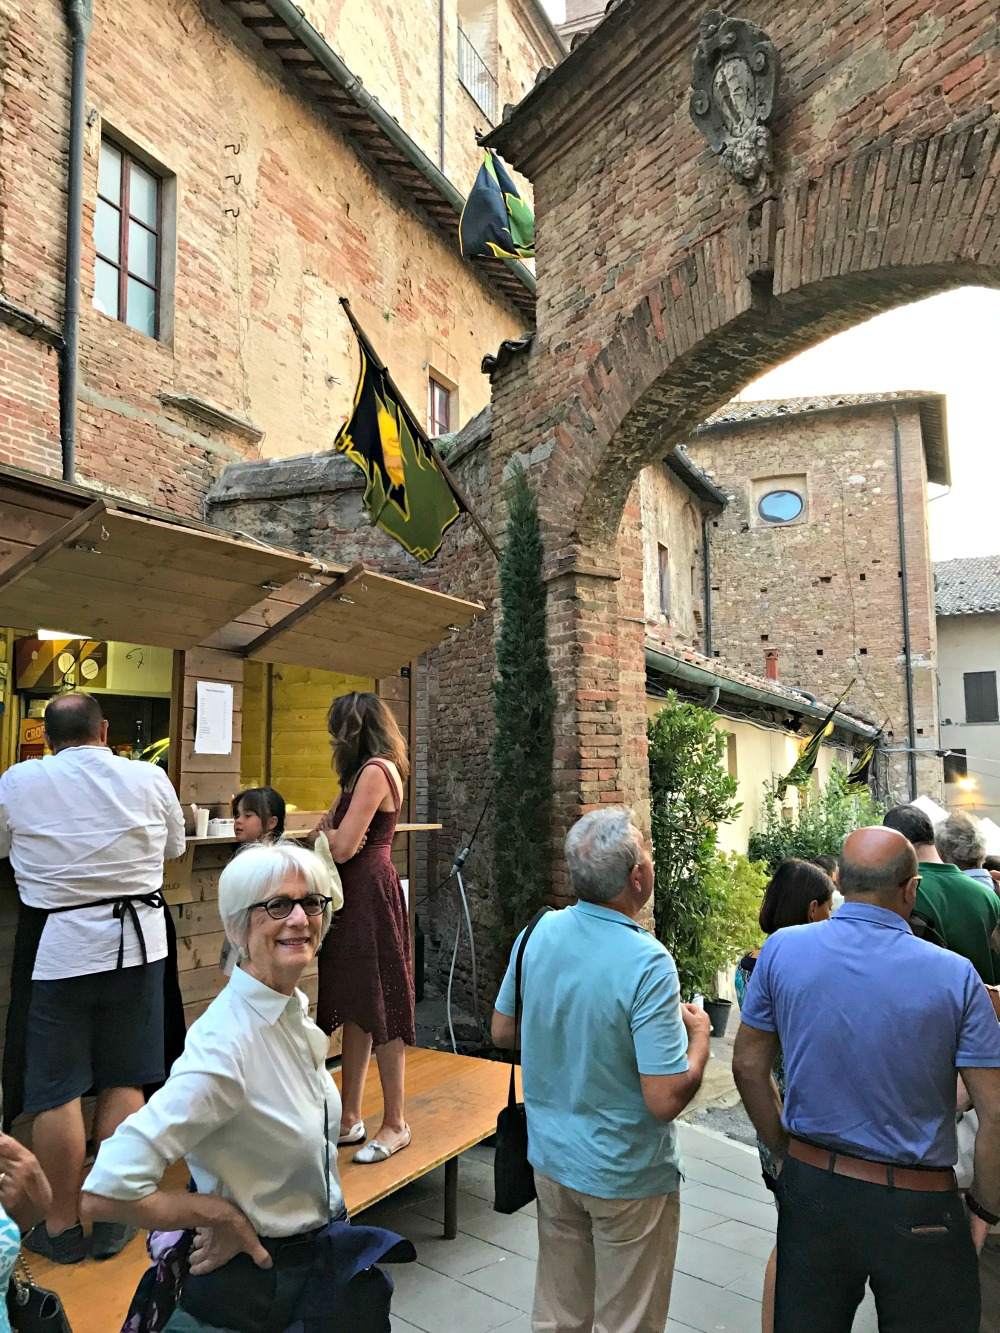 Waiting in line for yet another contrada dinner next to St. Augusto church.